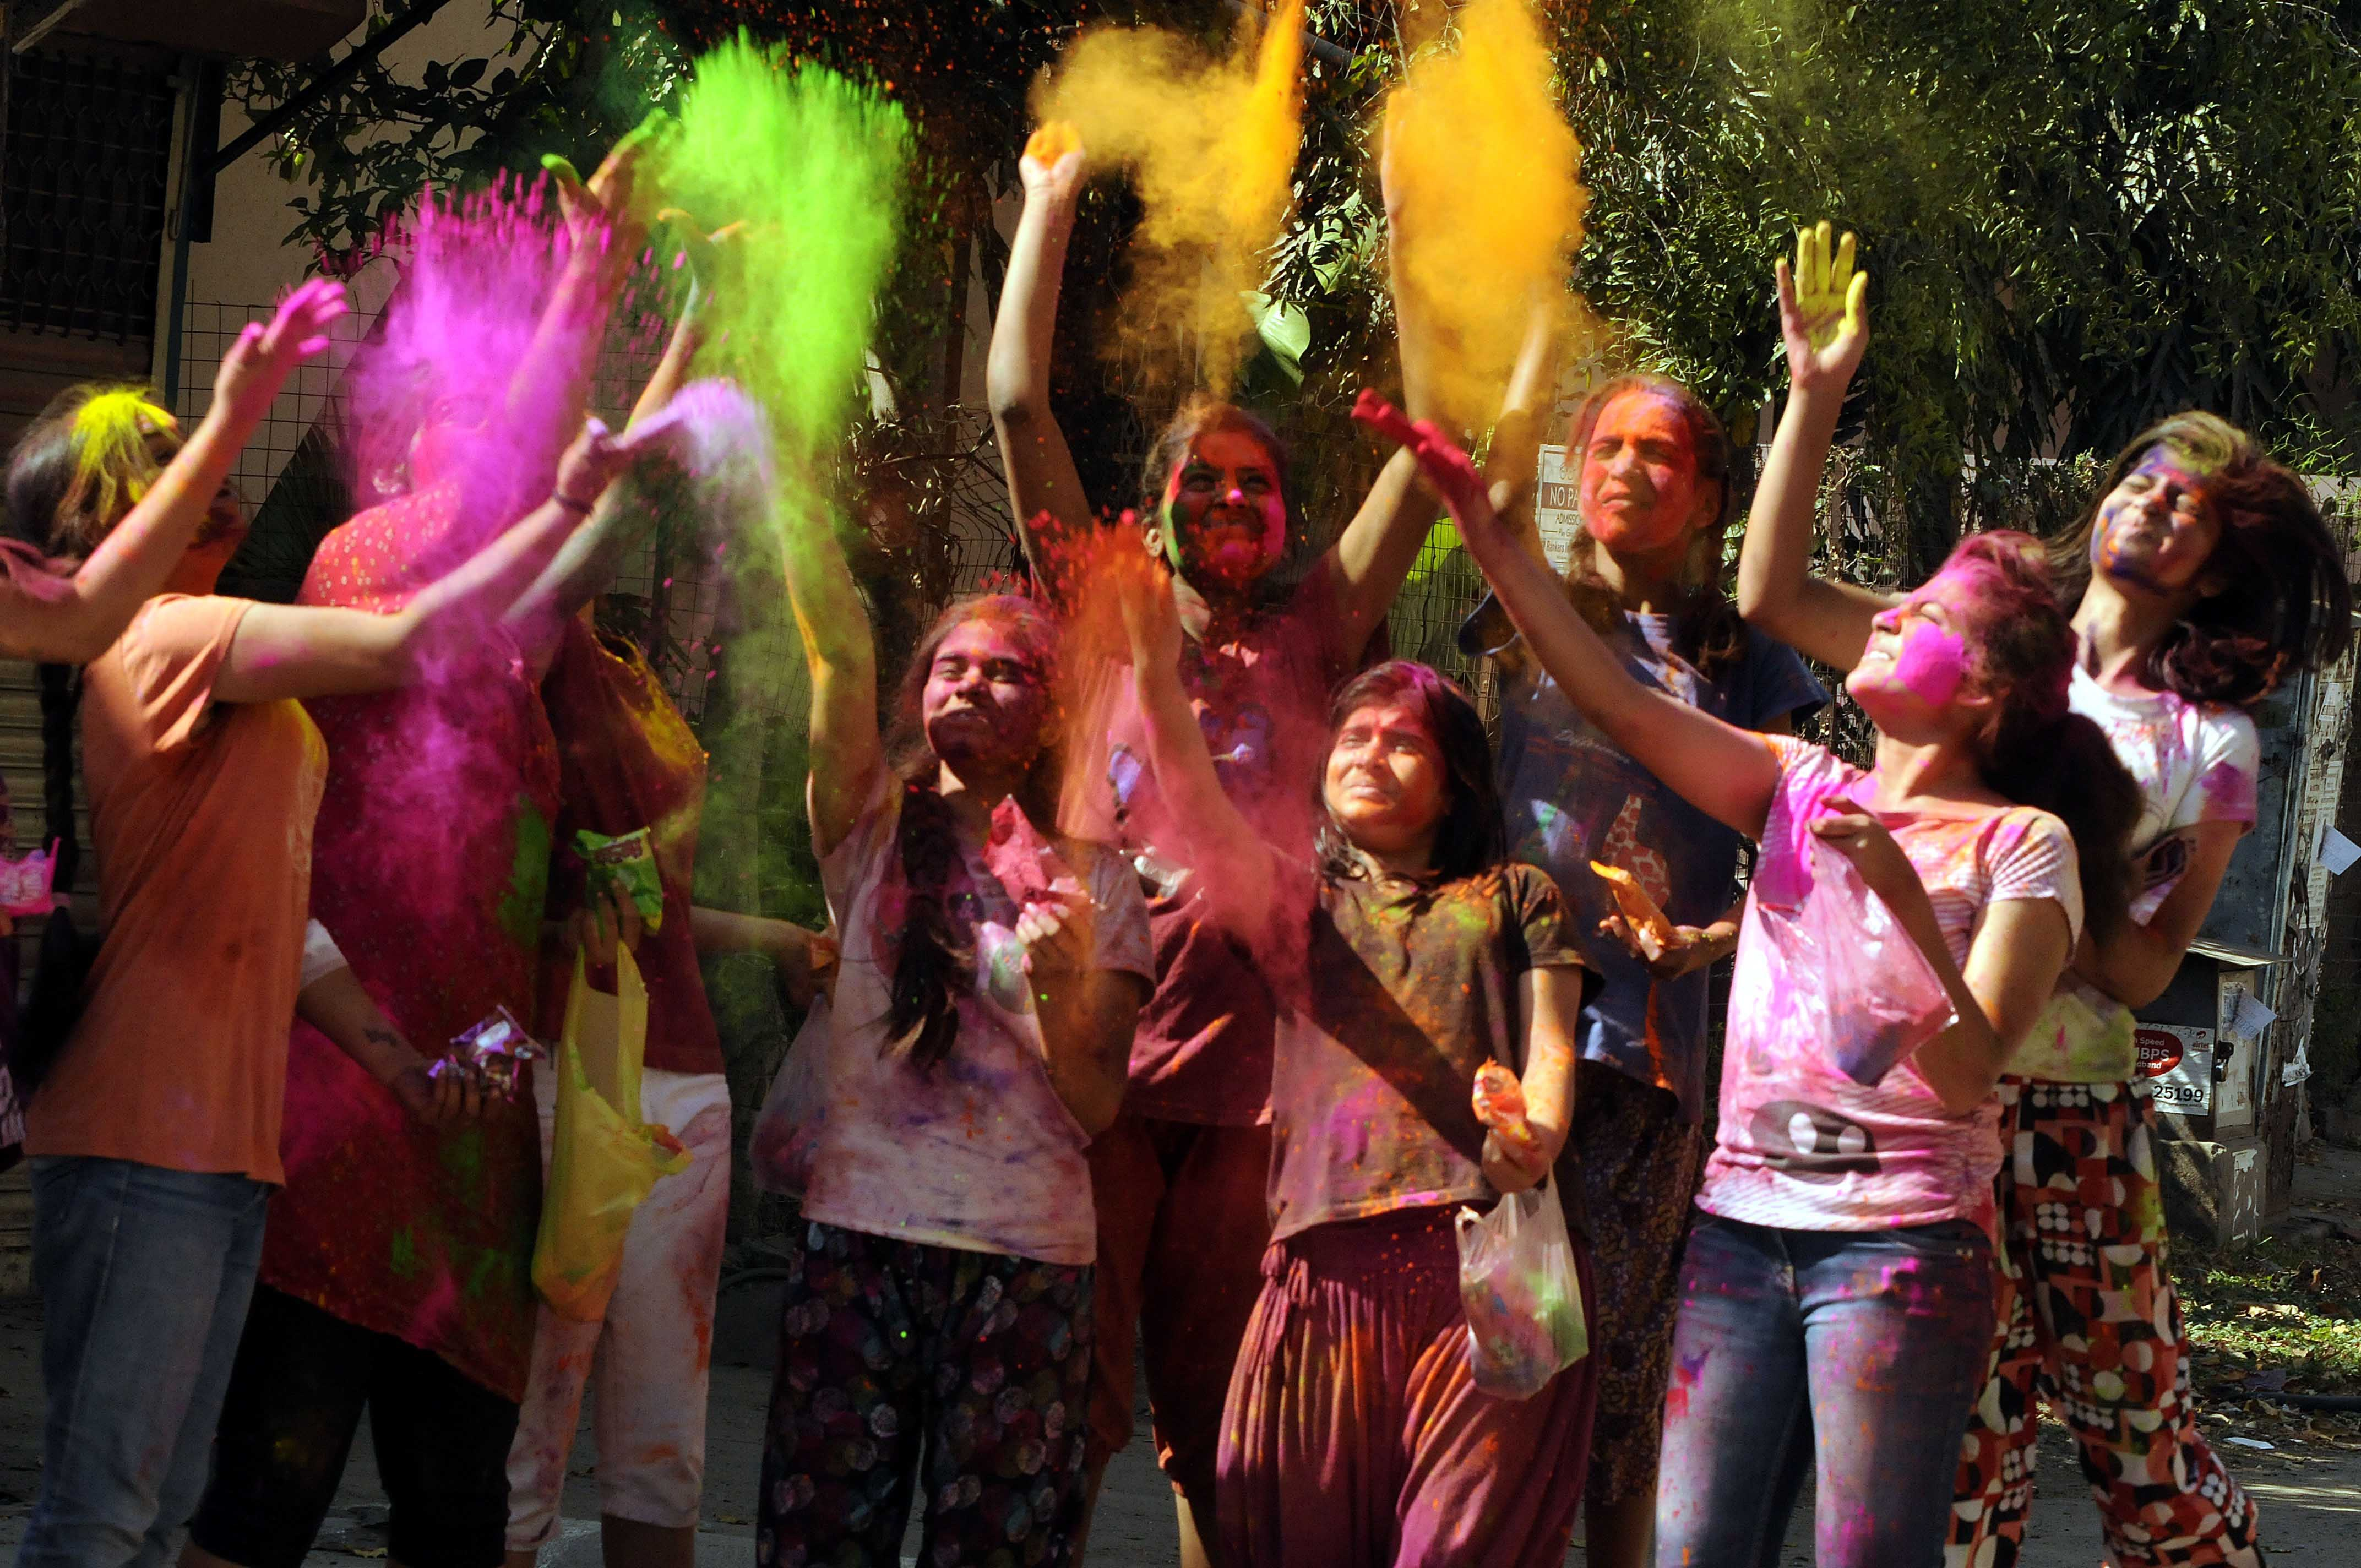 Children play with colors on the occasion of Holi 'The Festival of Colours,' on March 6, 2015 in Indore, India.  Photo by Arun Mondhe/Hindustan Times via Getty Images.